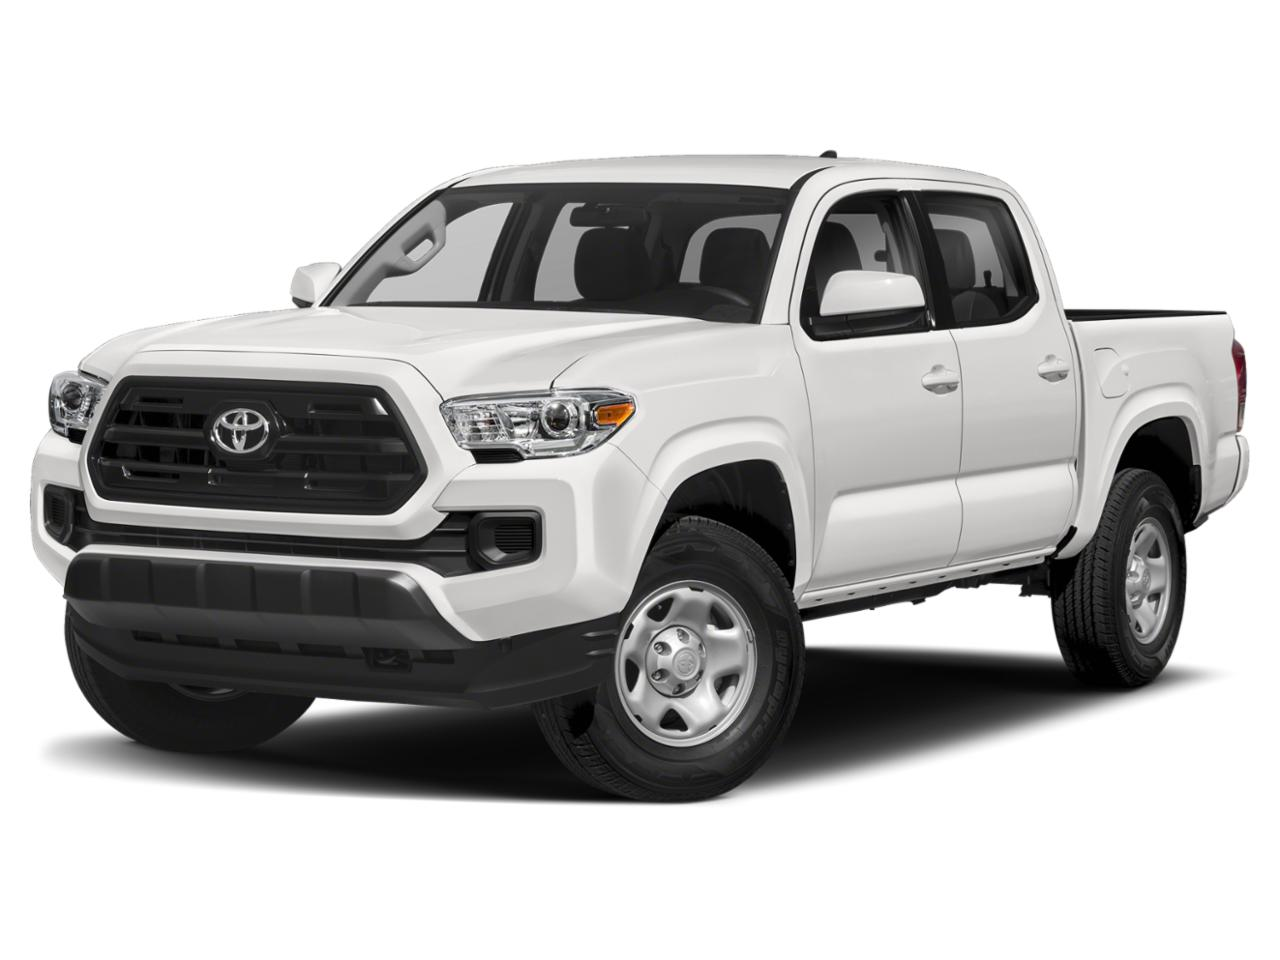 2018 Toyota Tacoma Vehicle Photo in Mission, TX 78572